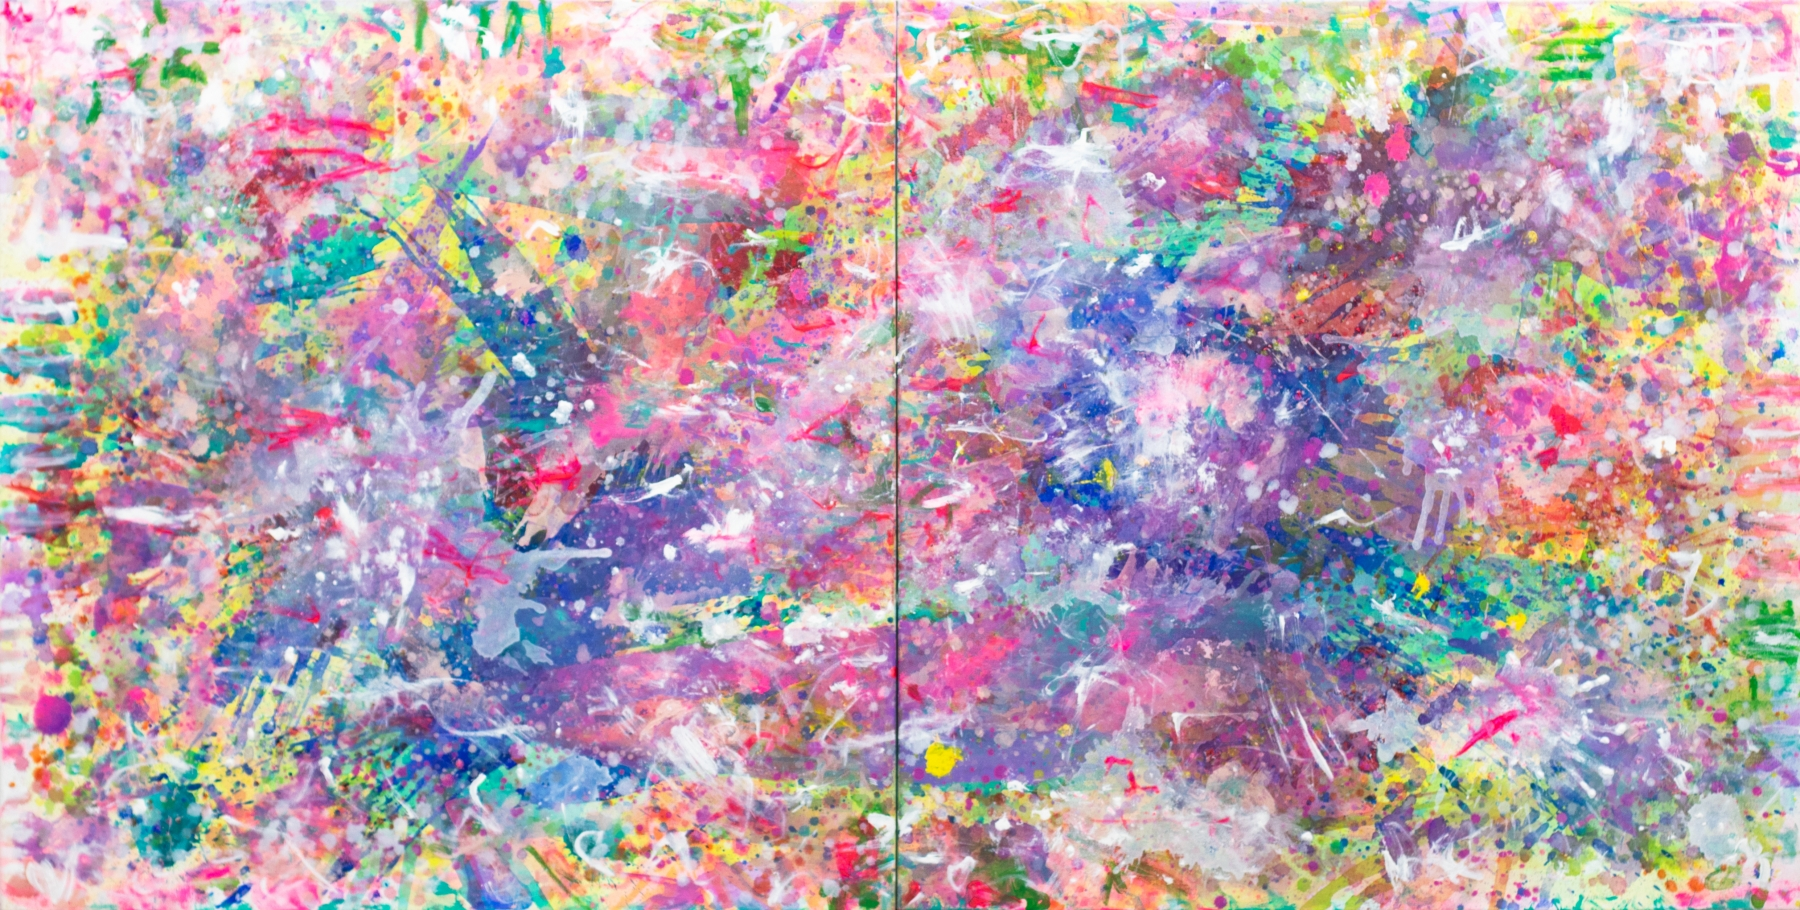 J. Steven Manolis, Color Matters, 2016, Acrylic painting on canvas, 48 x 96 inches, Colorful Abstract painting For sale at Manolis Projects Art Gallery, Miami Fl